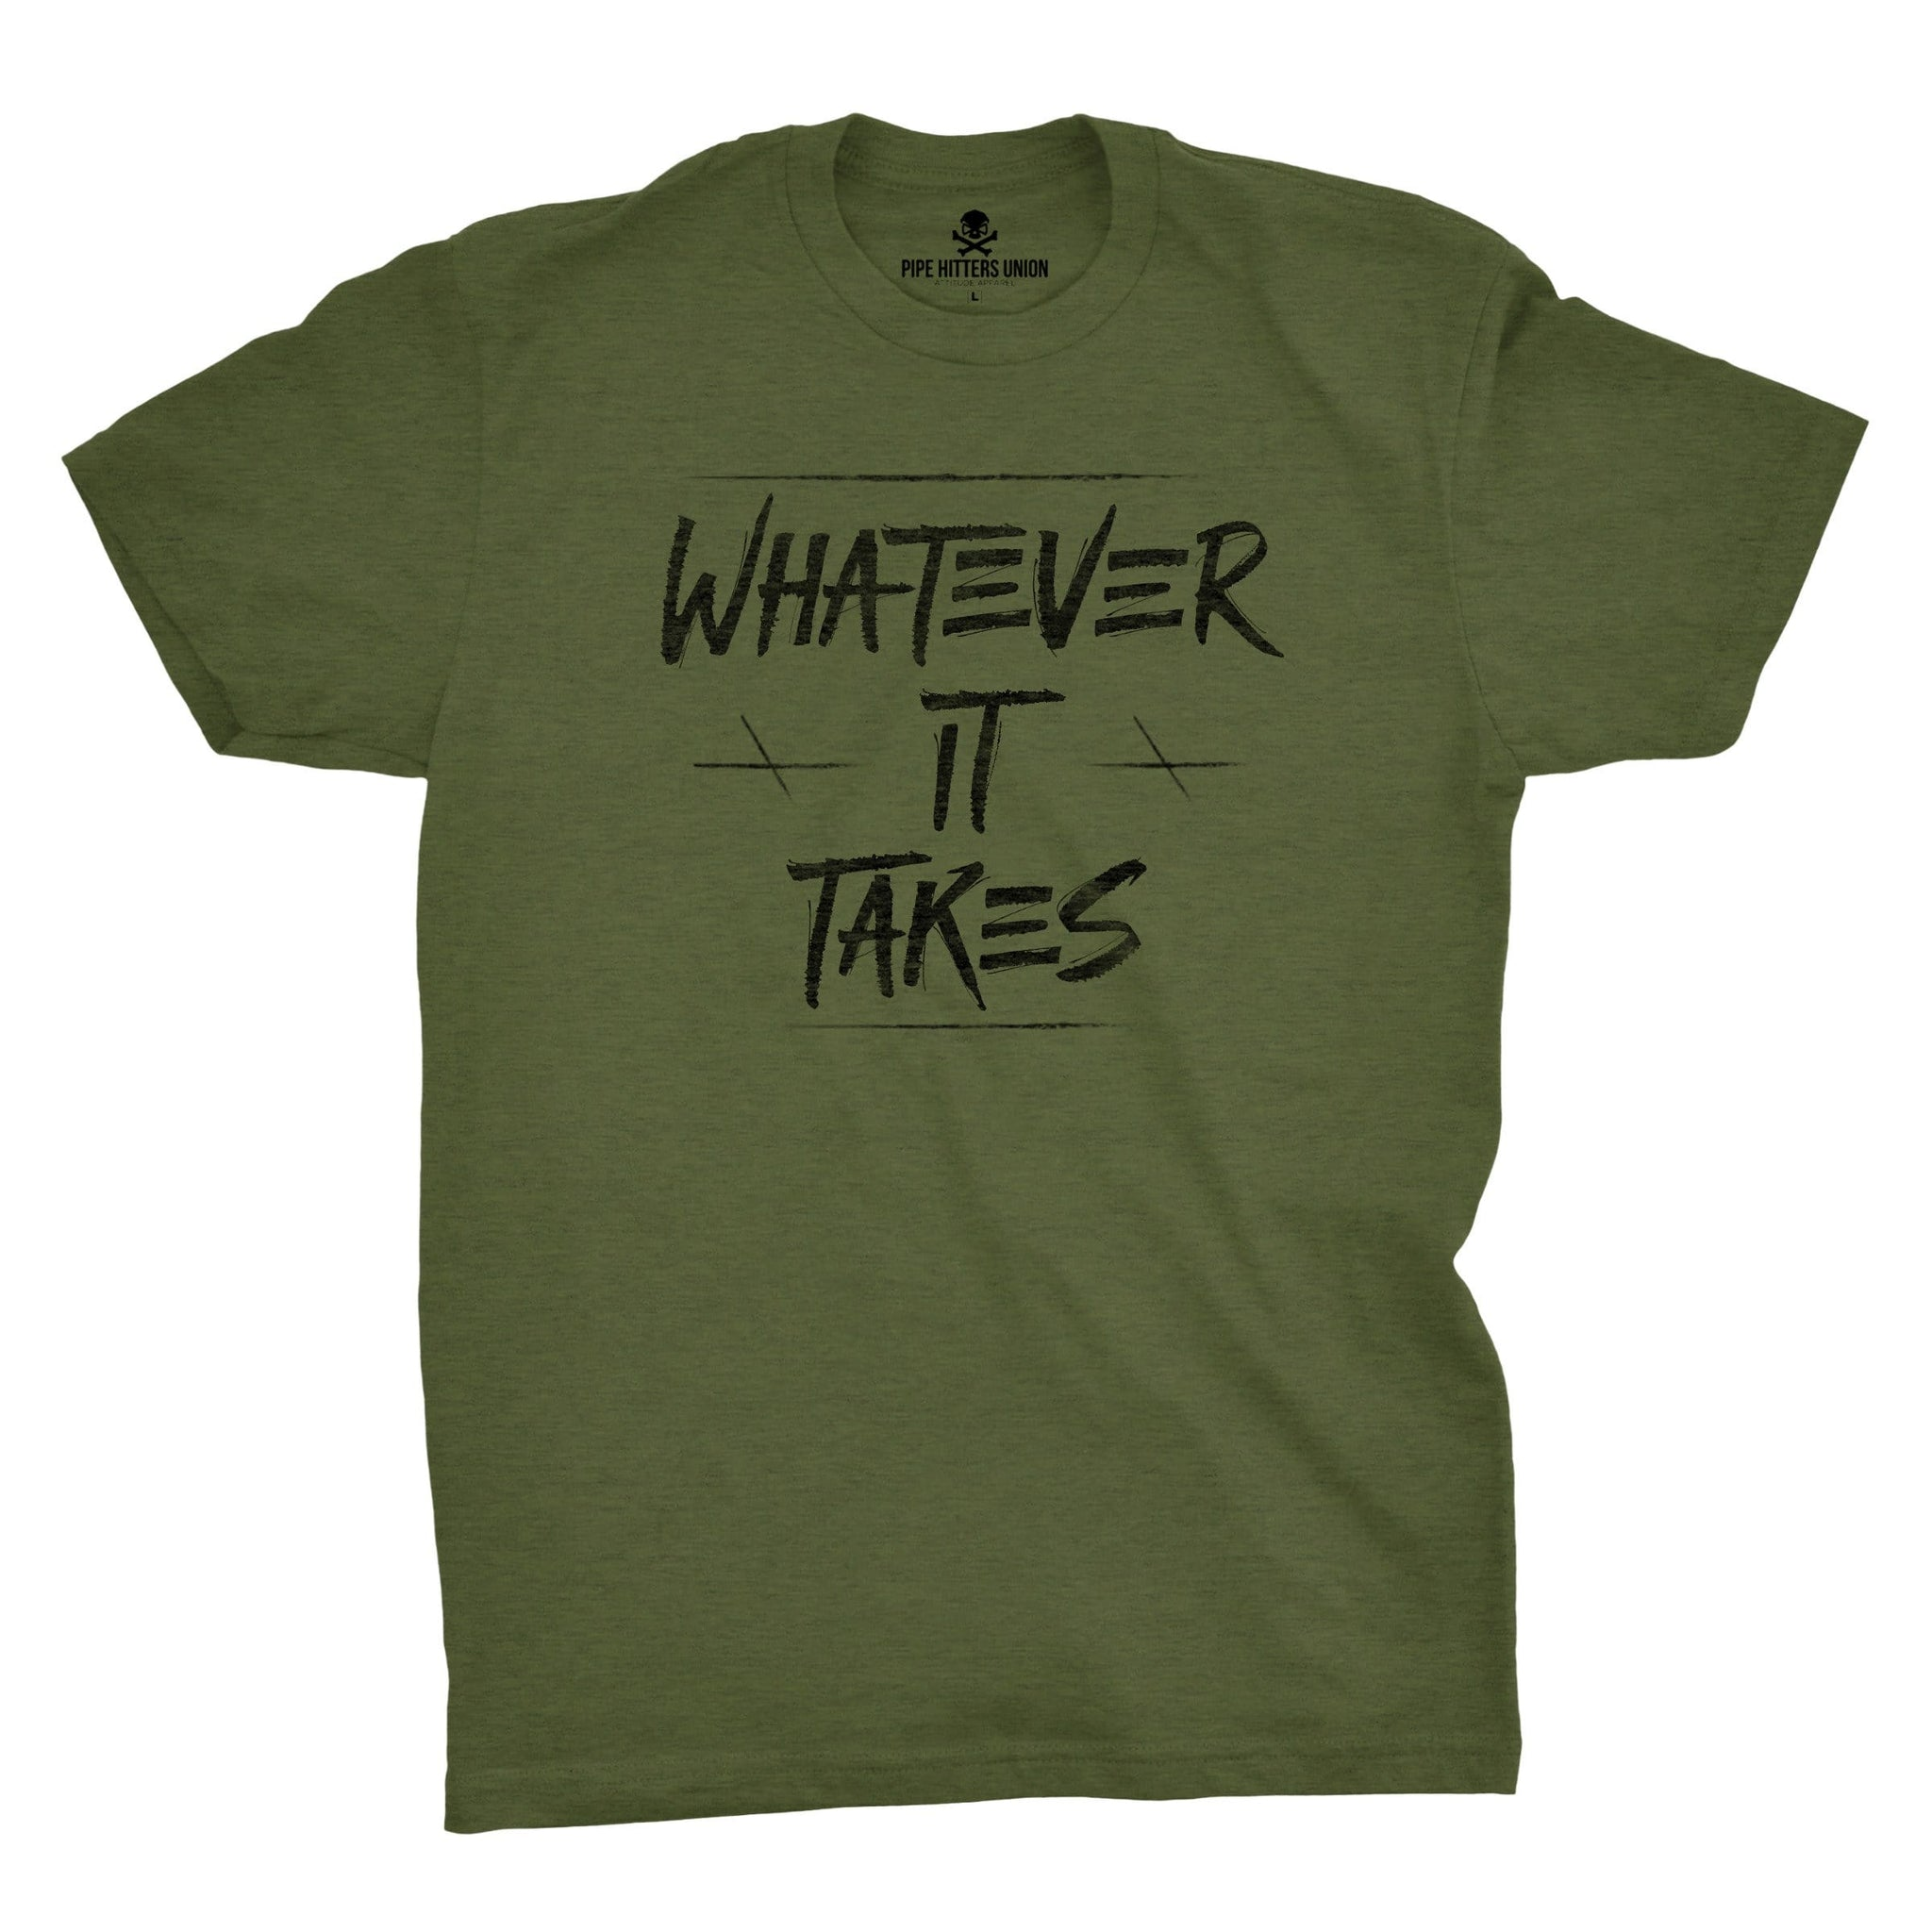 Whatever It Takes - Military Green - T-Shirts - Pipe Hitters Union